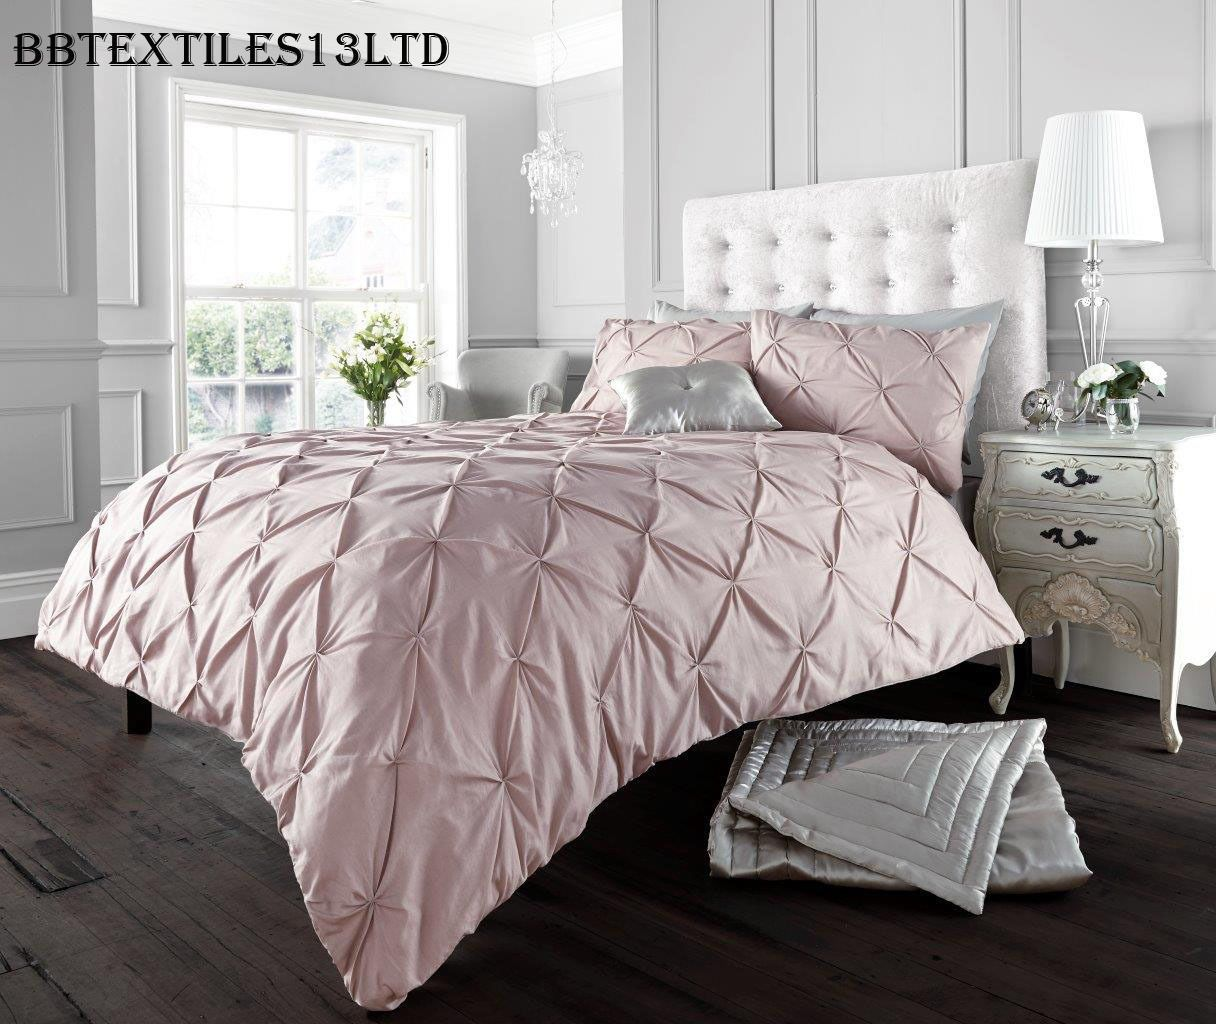 Diamond Pintuck Duvet Cover Set With Pillow Cases Luxury Bed Linen Quilt Sets In Home Garden Bedding Duvet Cover Sets Bed Linens Luxury Dusty Pink Bedroom